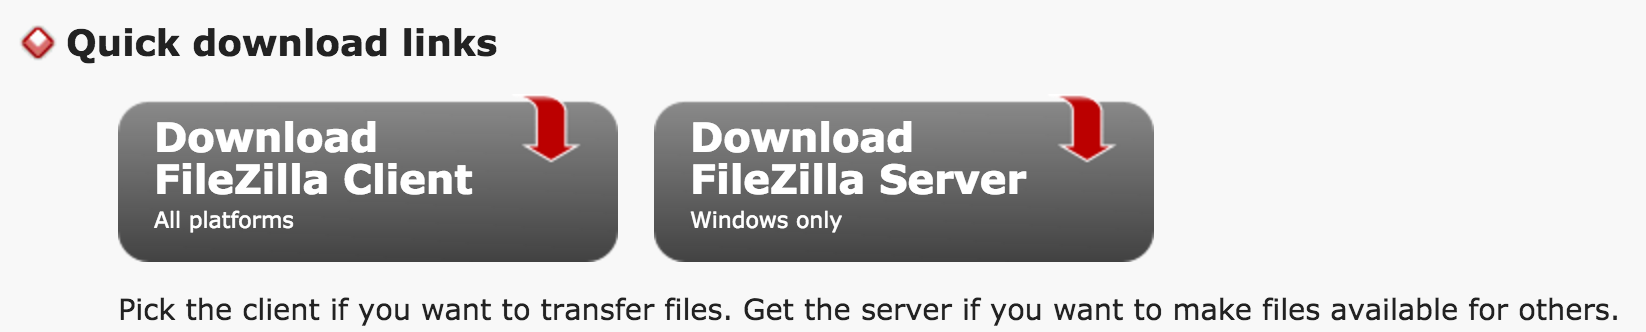 filezilla-download-pagina-1